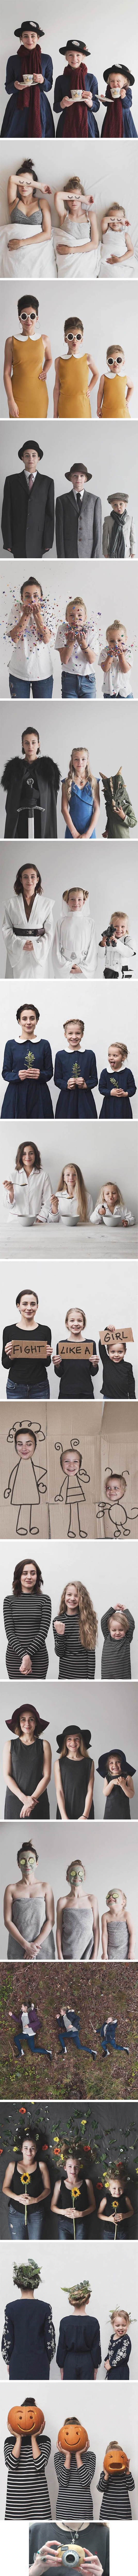 Mother takes adorable photos with her two daughters in matching